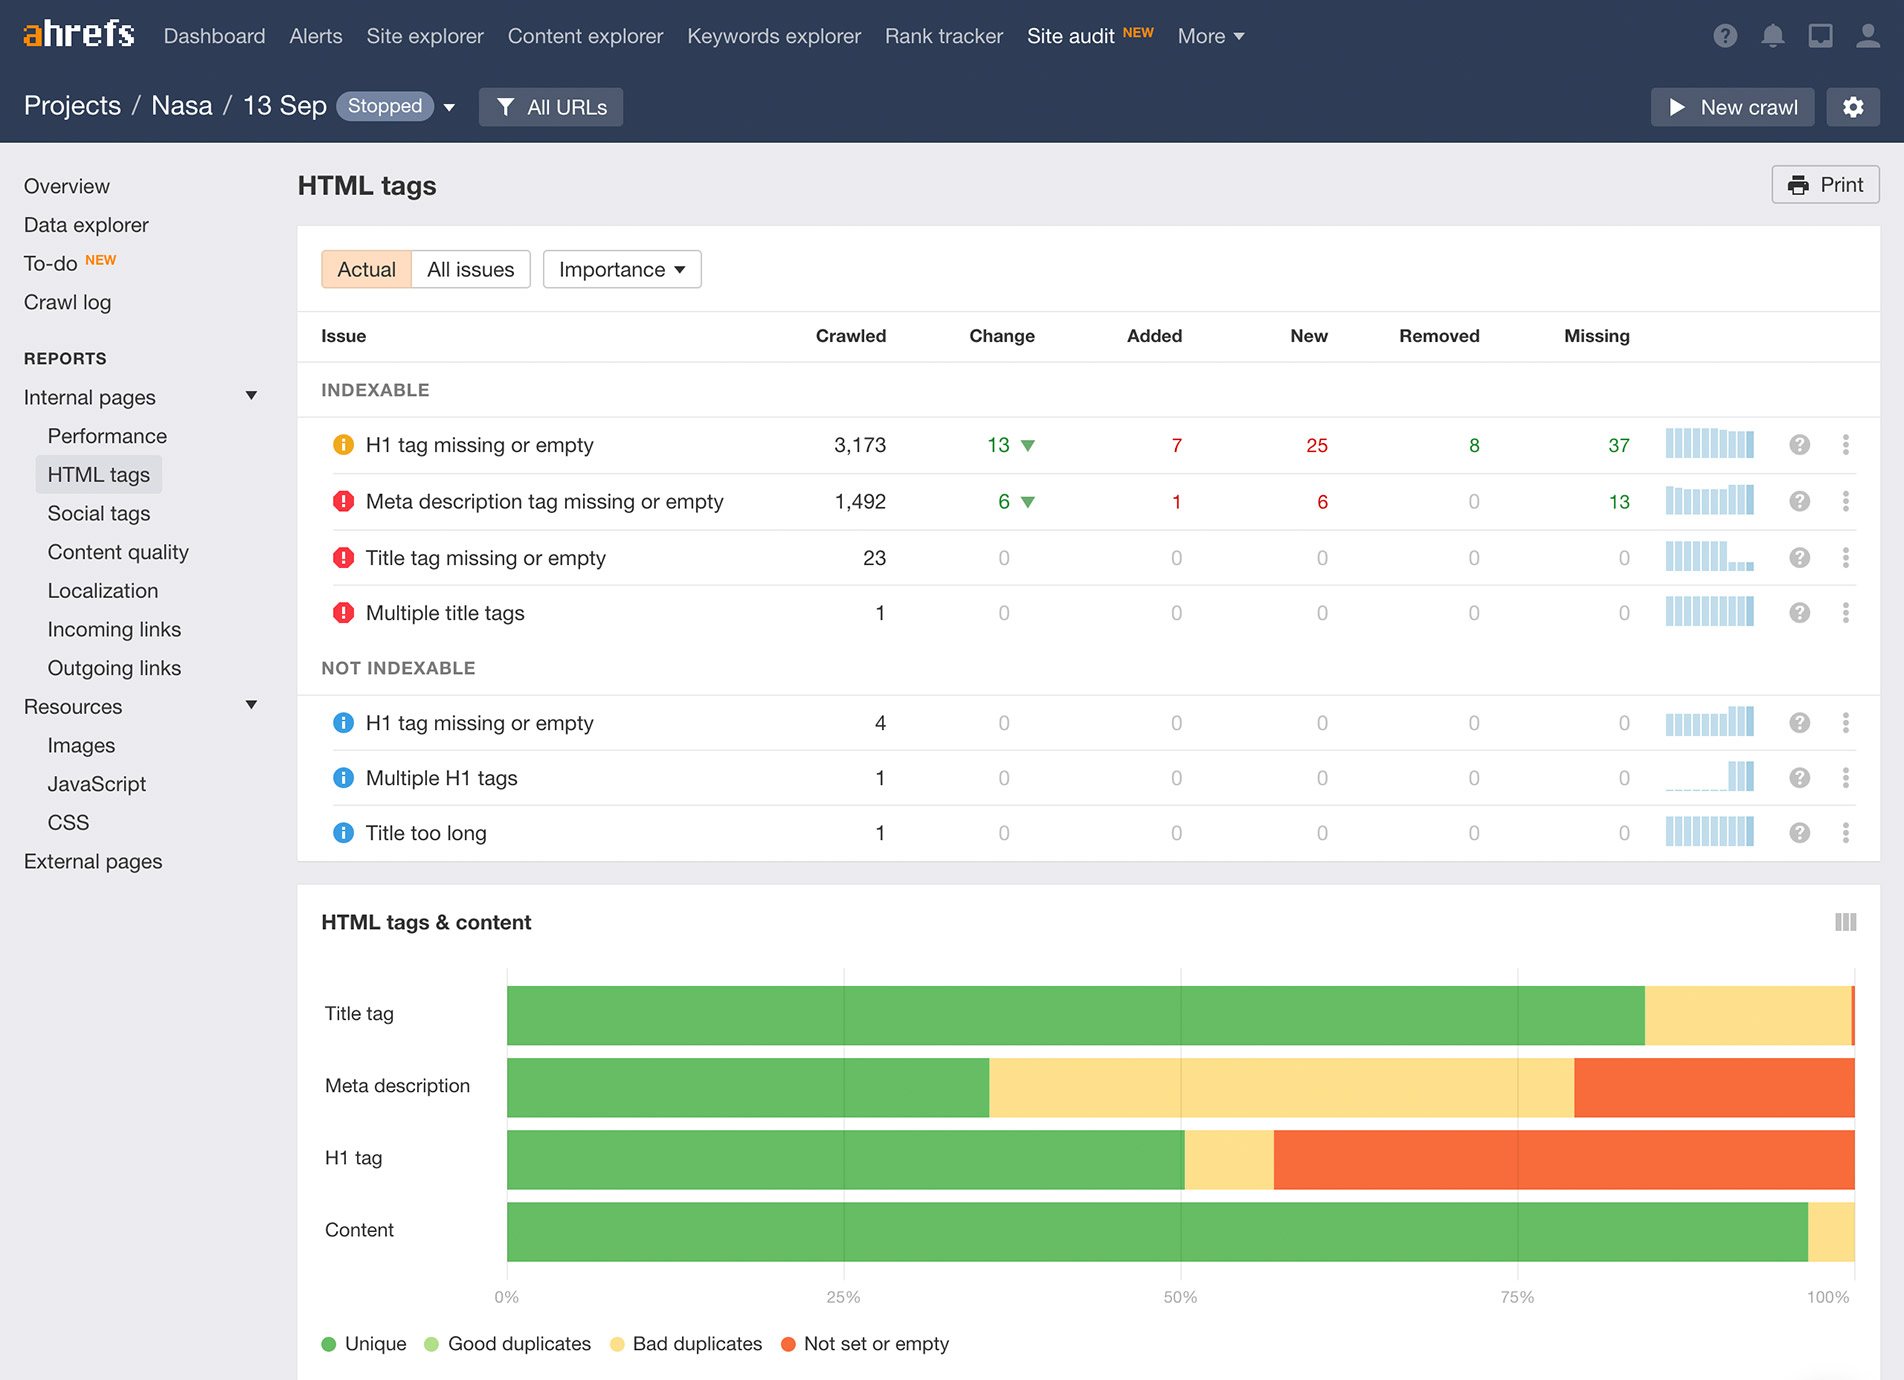 Results of a site audit in Ahrefs